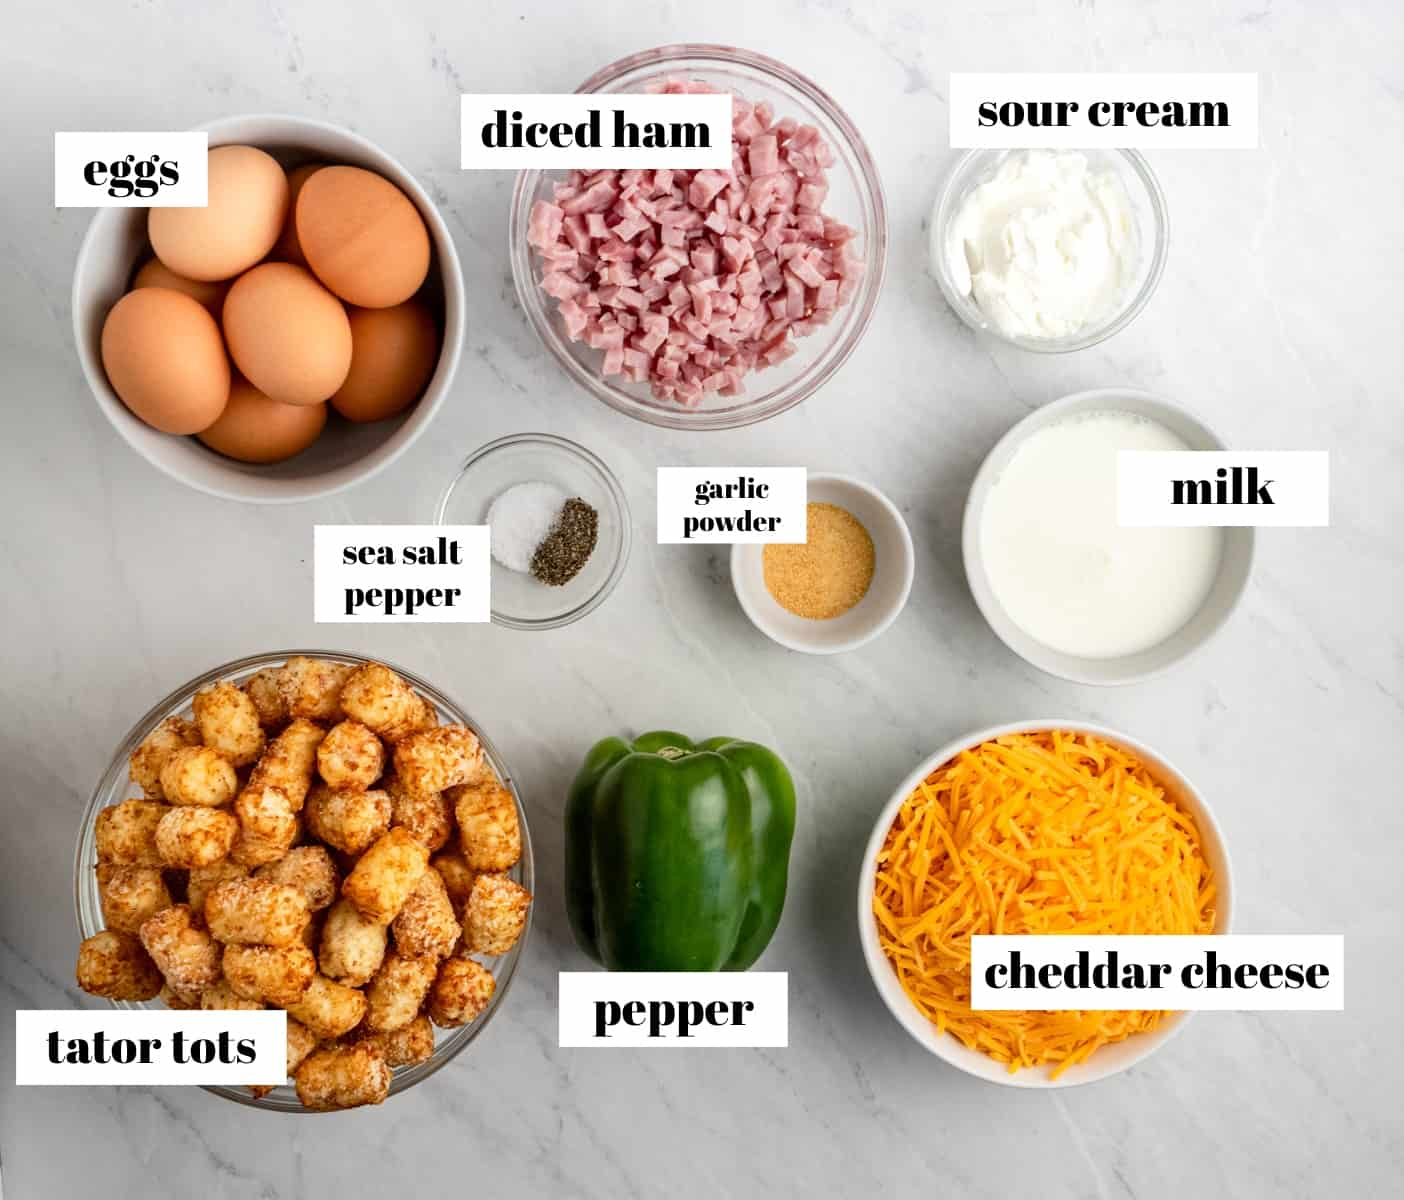 Eggs, ham, pepper, milk and other ingredients labeled on counter.